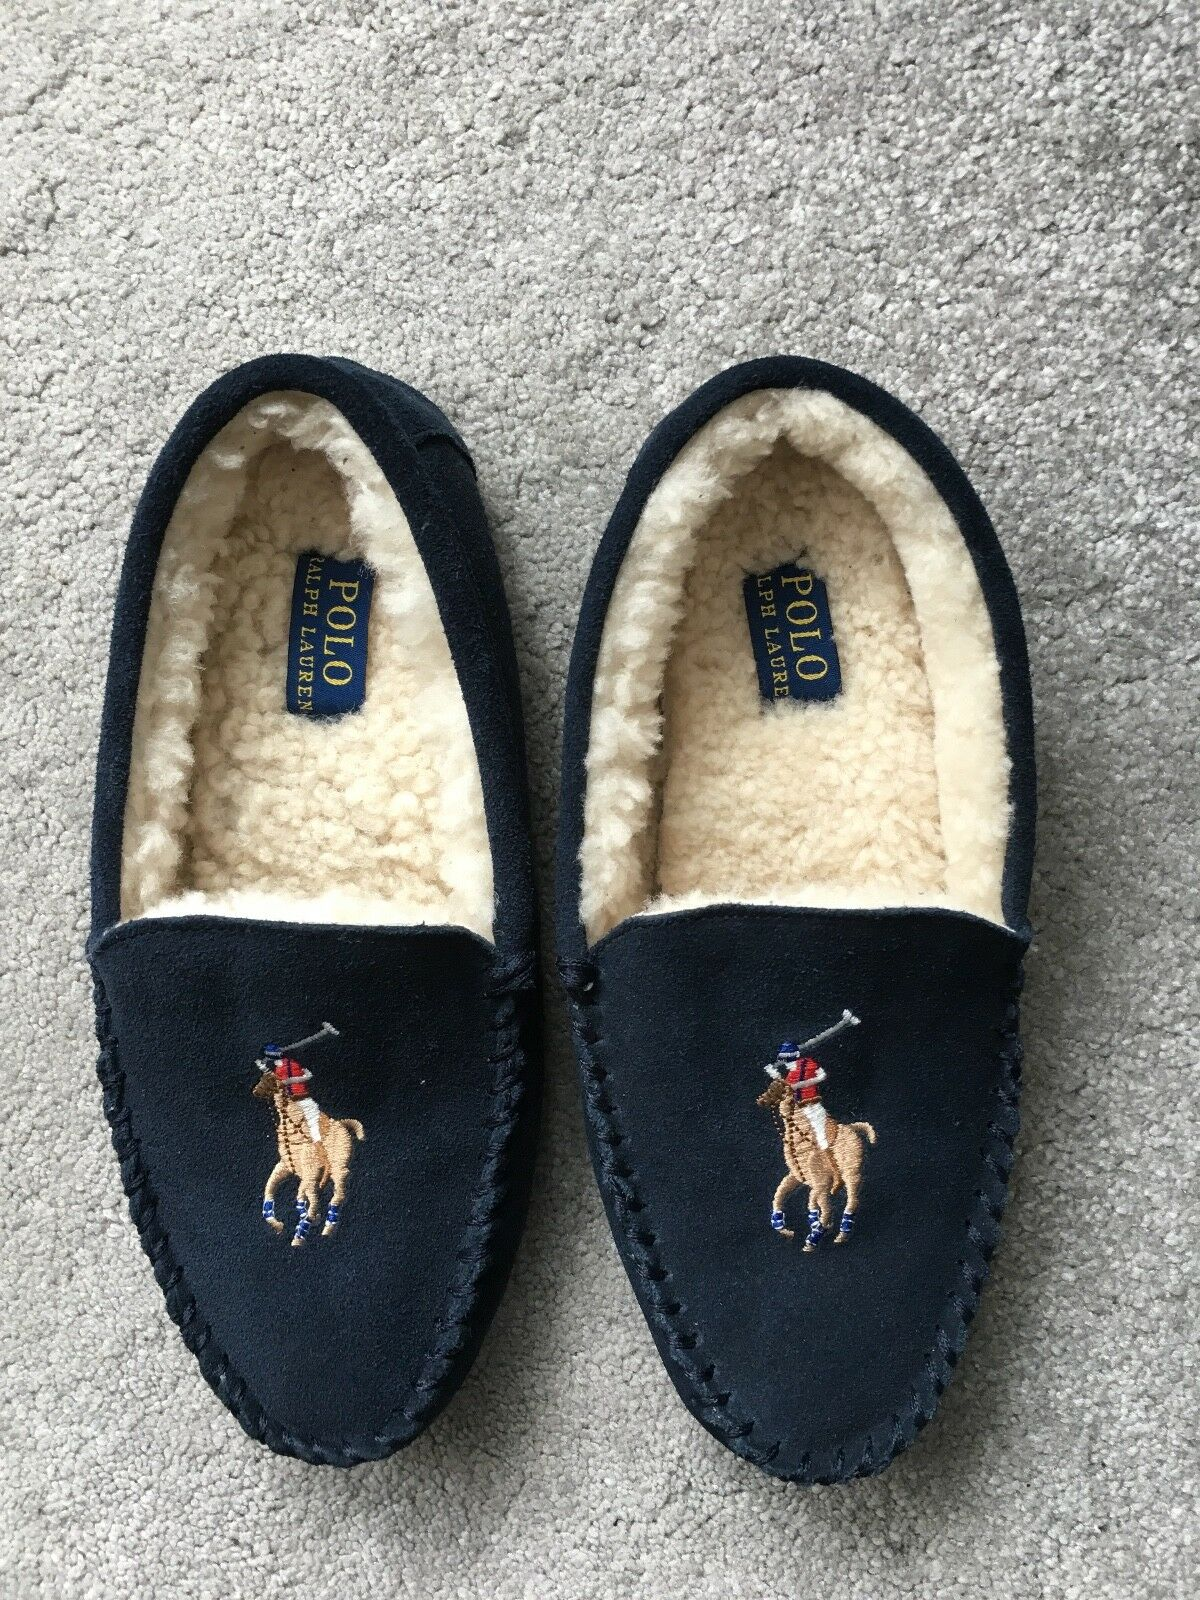 Ralph Lauren bluee Leather suede shearling slippers size 6, Eur  40,(25.5 cm)